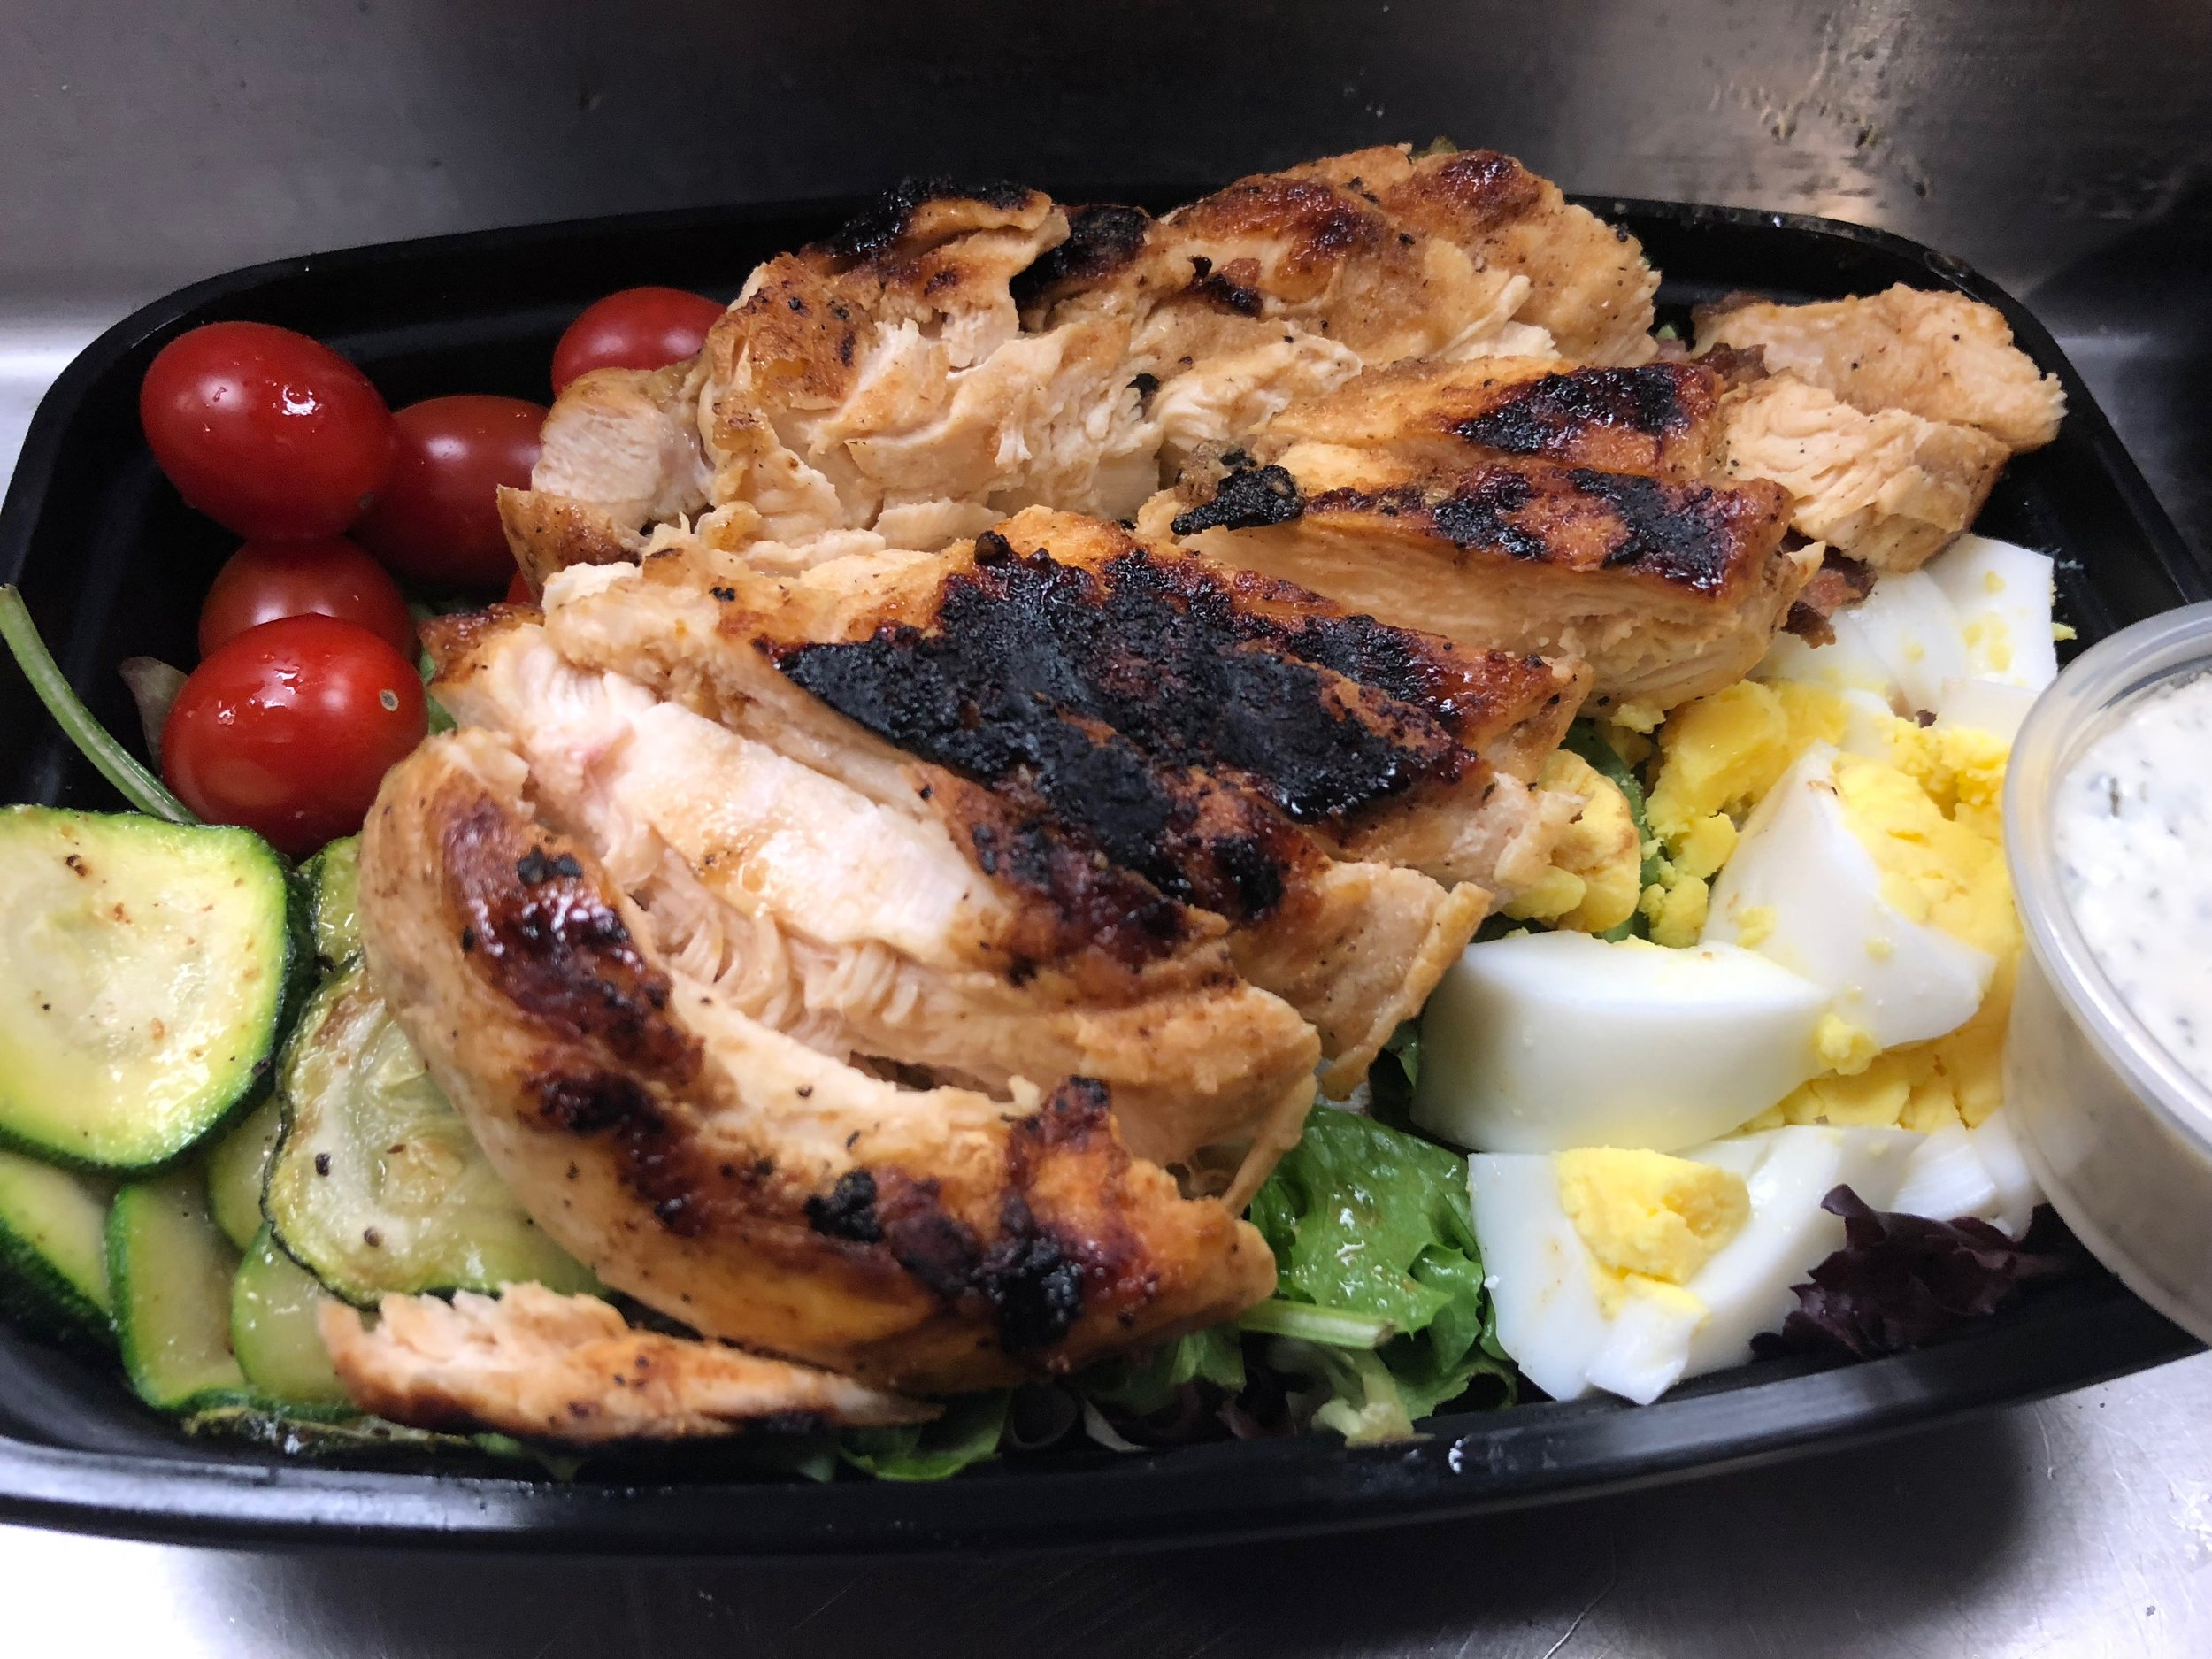 Chicken Cobb Salad with homemade ranch dressing